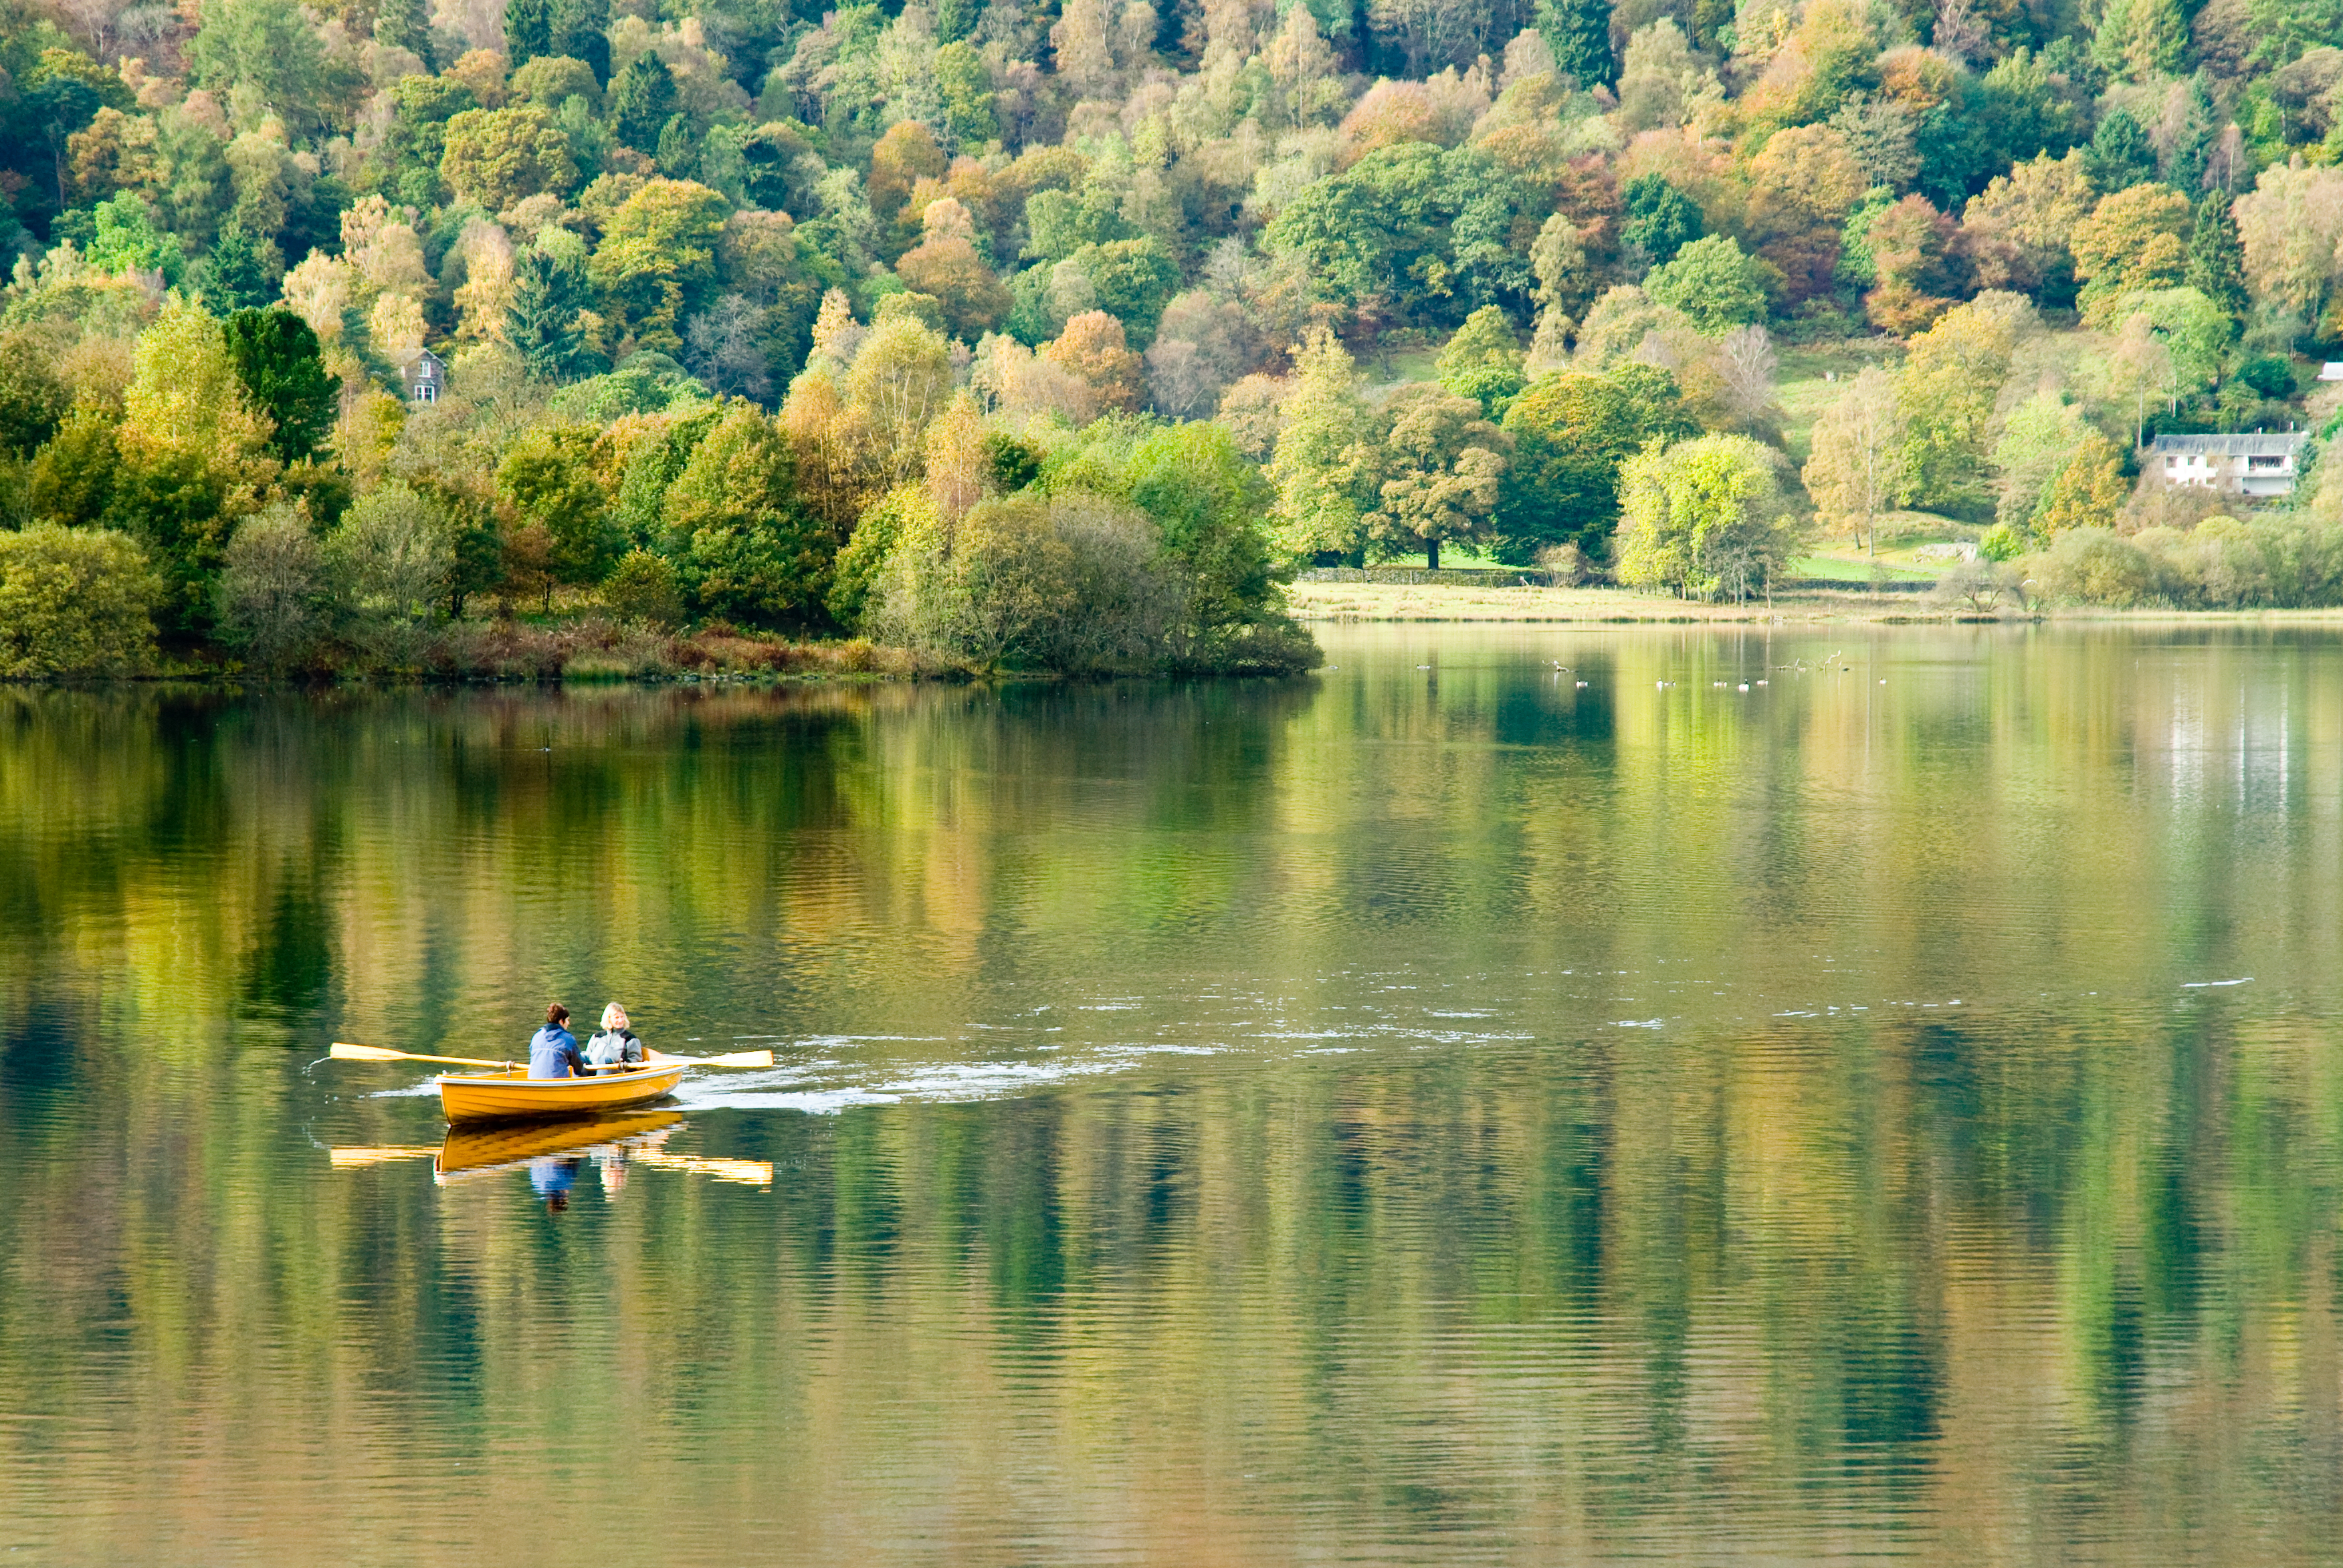 Here is a picturesque take on one of the towns/villages I have mentioned in this paragraph. Isn't this a fantastic photo of Grasmere Lake? Two canoeists row in the still deep silence of a glassy lake which reflects the beauty of its surroundings. (Photo courtesy of www.cumbriaphoto.co.uk.)